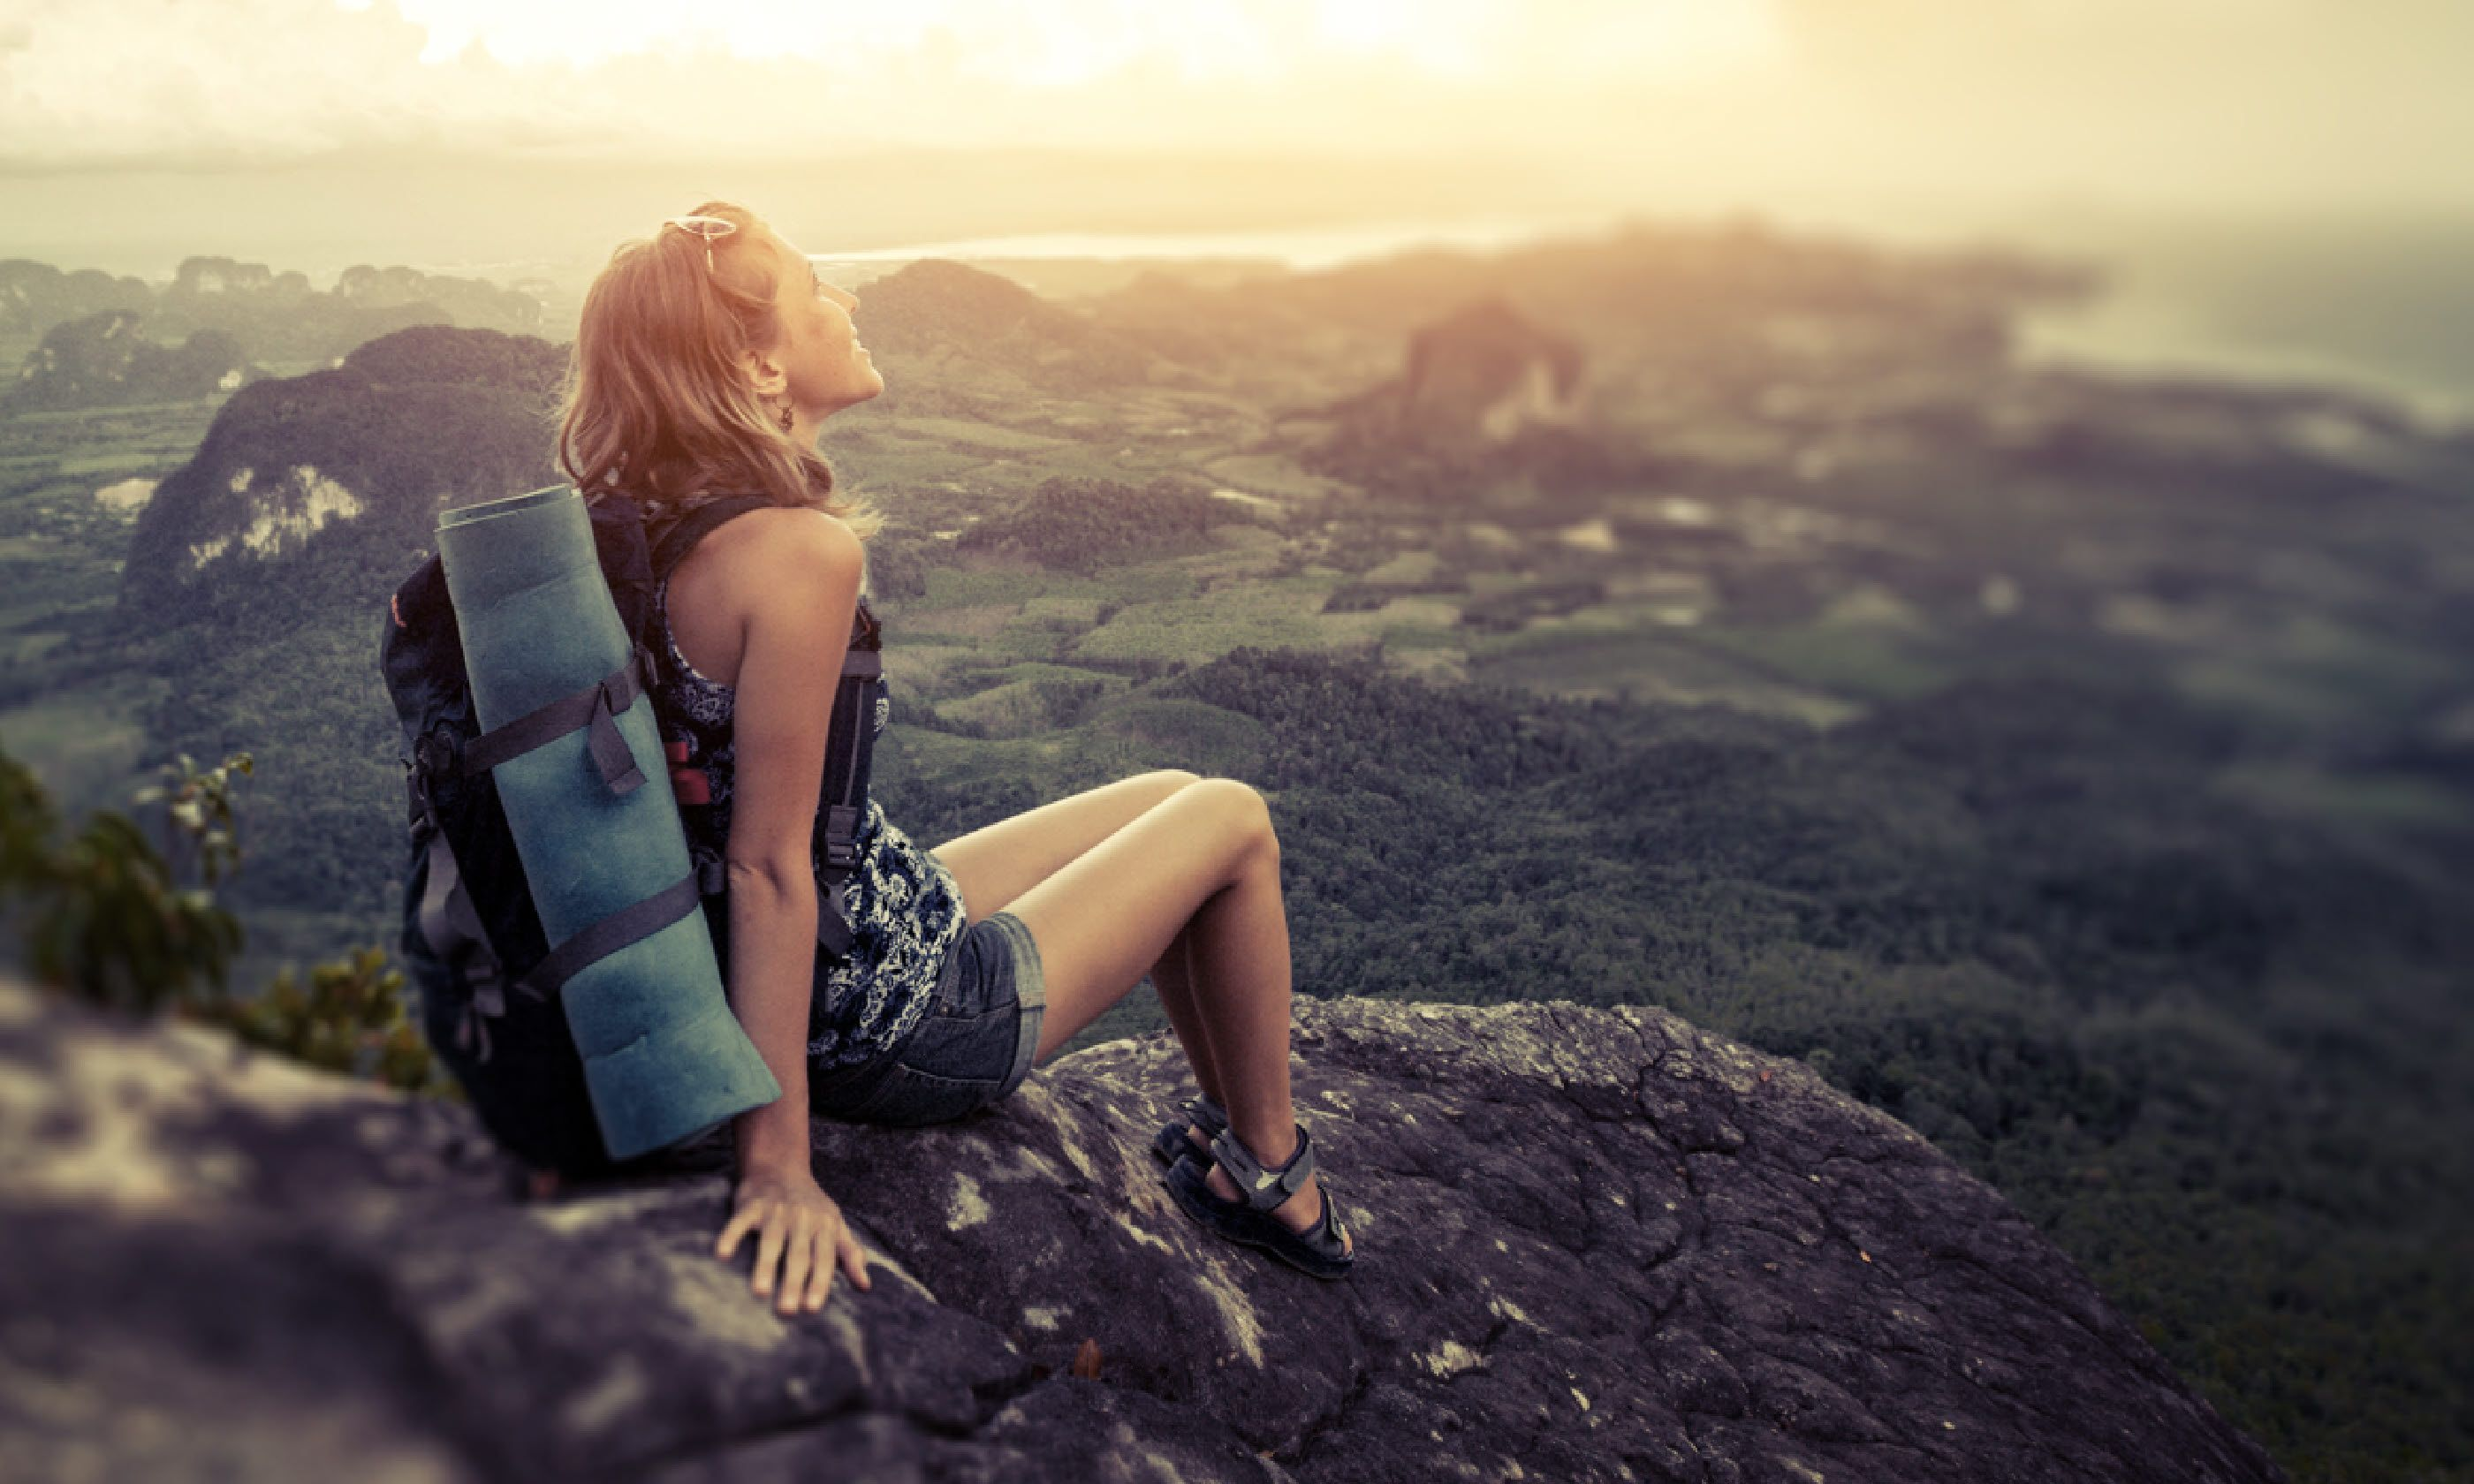 Make time for your own adventures (Photo: Shutterstock)